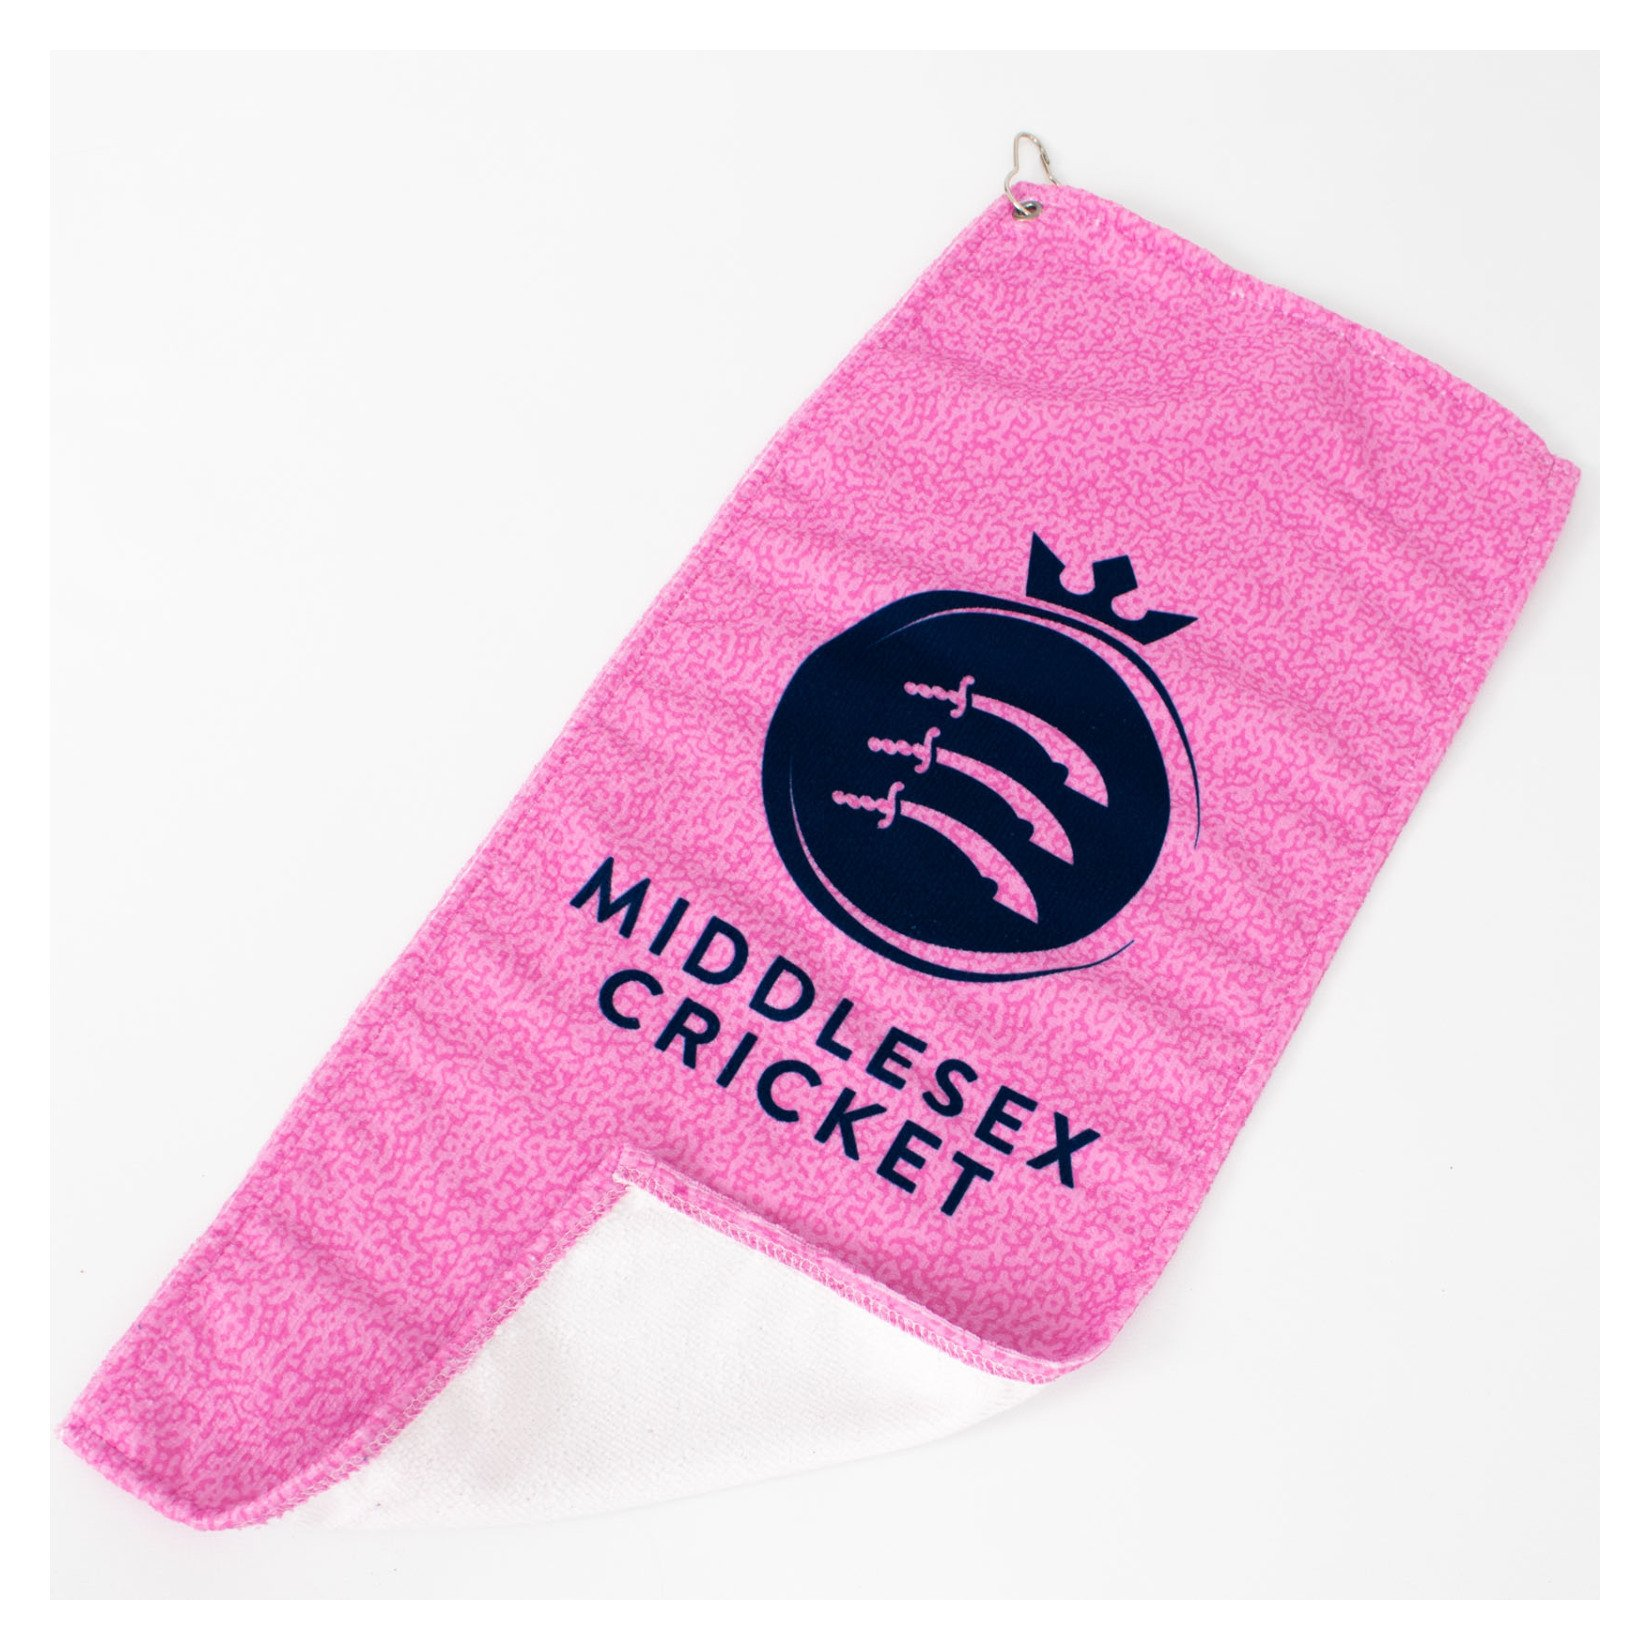 TTS-BESPOKE Middlesex Cricket Golf Towel